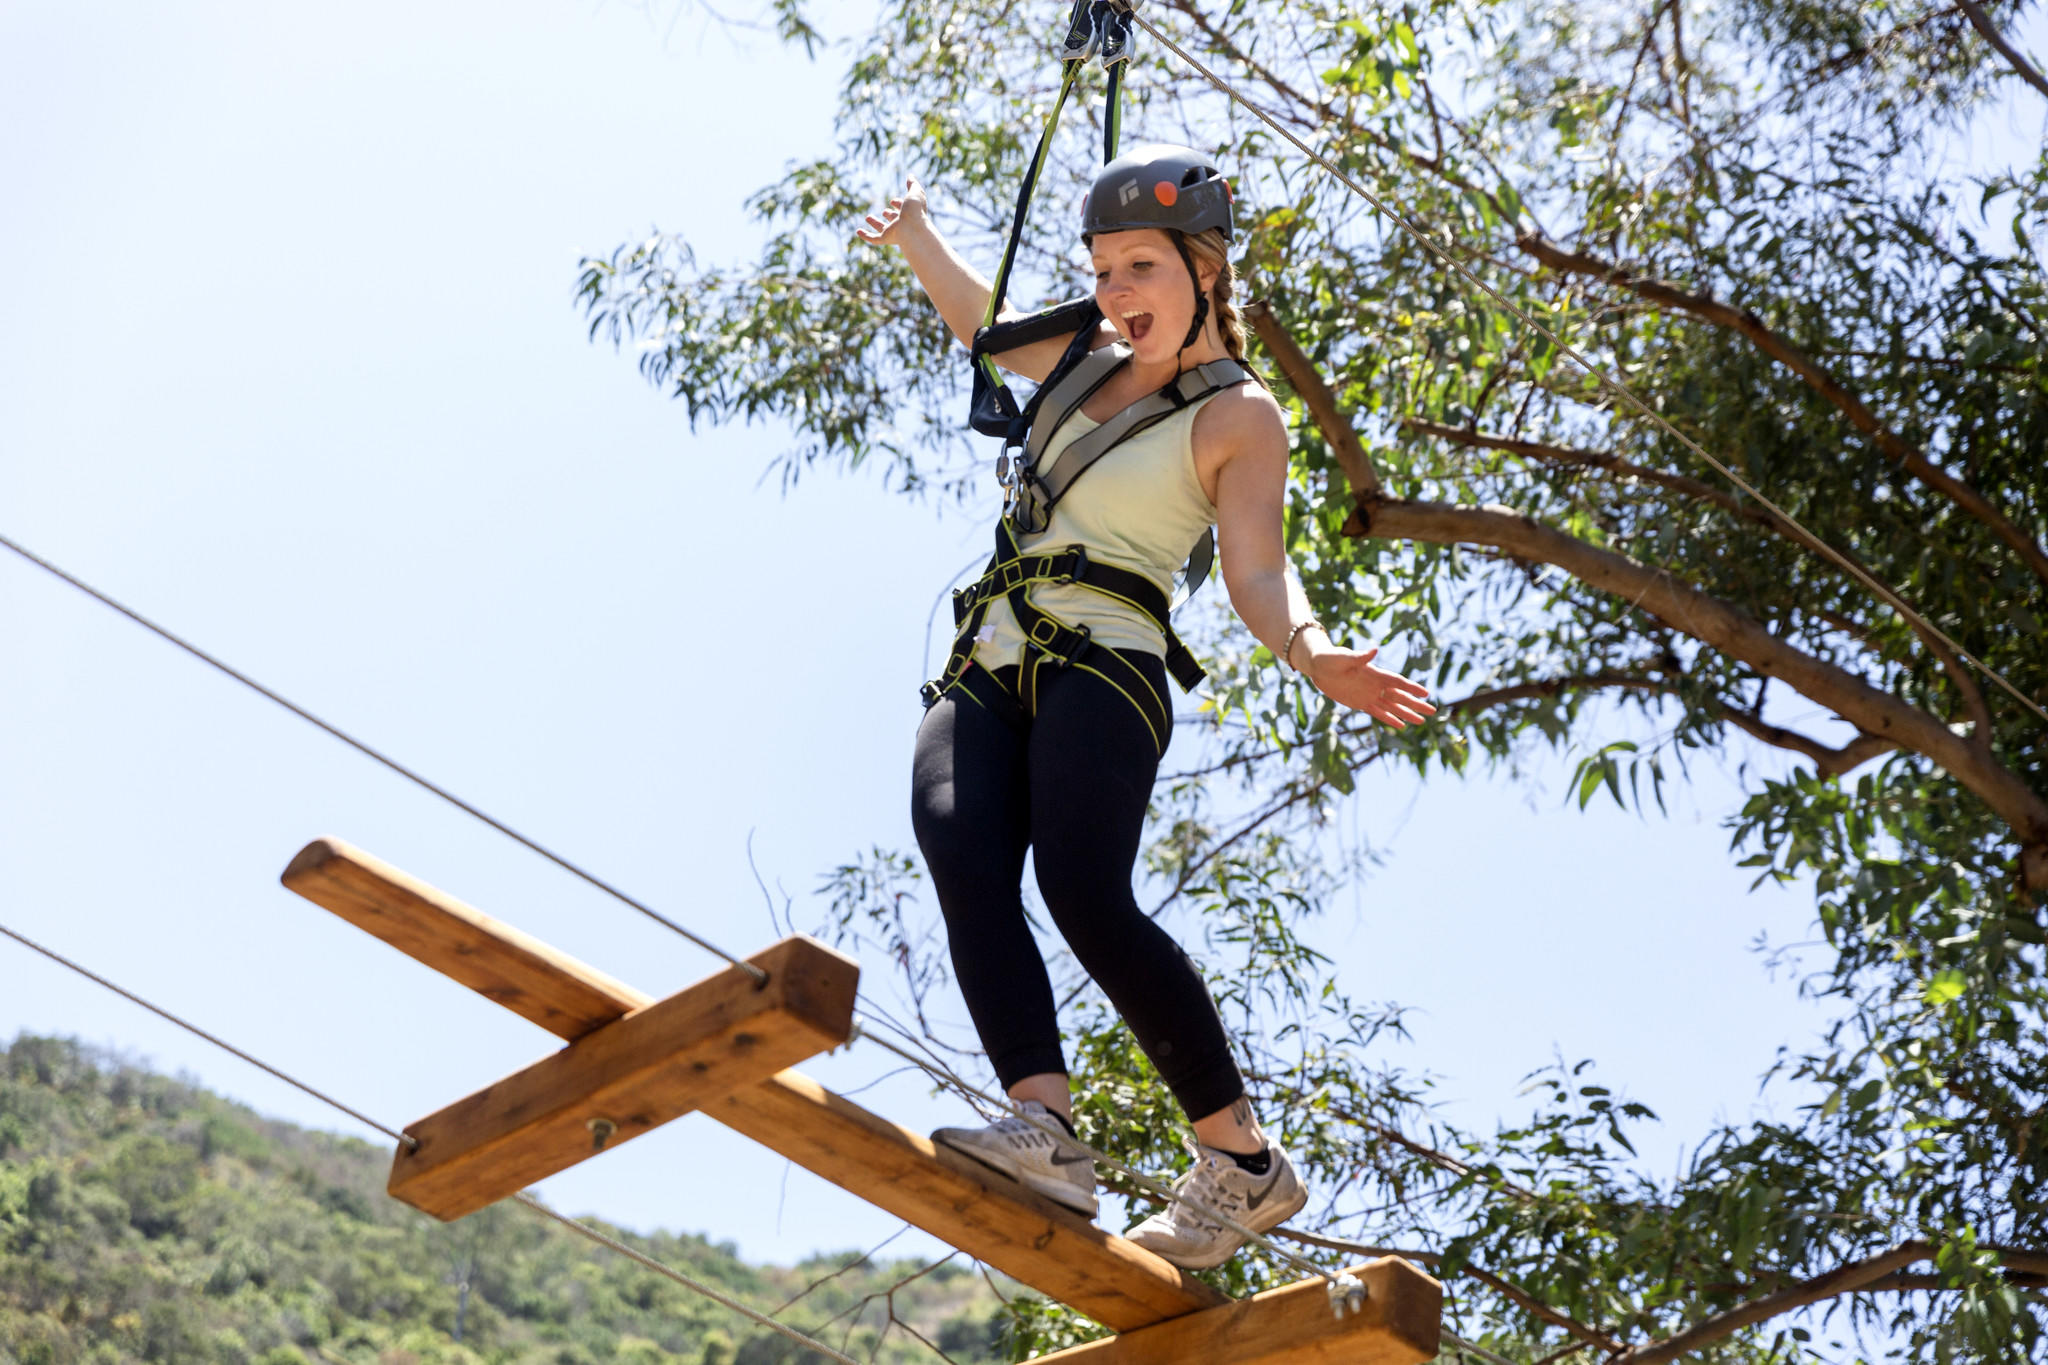 Catalina Aerial Adventure in Descanso Canyon, beyond the city's Avalon Casino landmark.